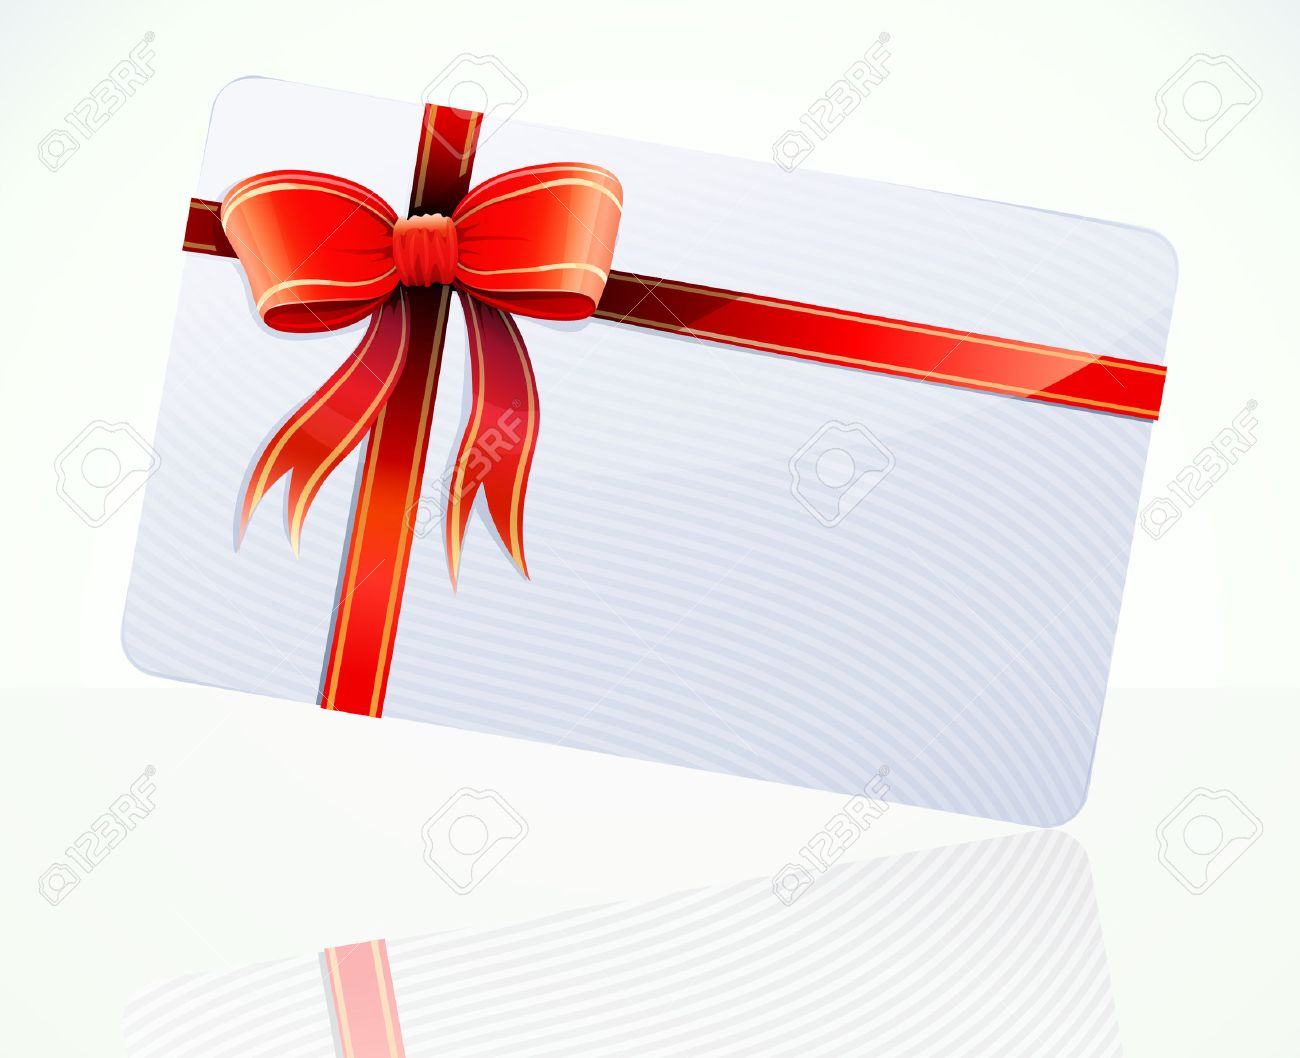 Vector illustration of decorated gift card with red ribbons and bow Stock Vector - 8264930